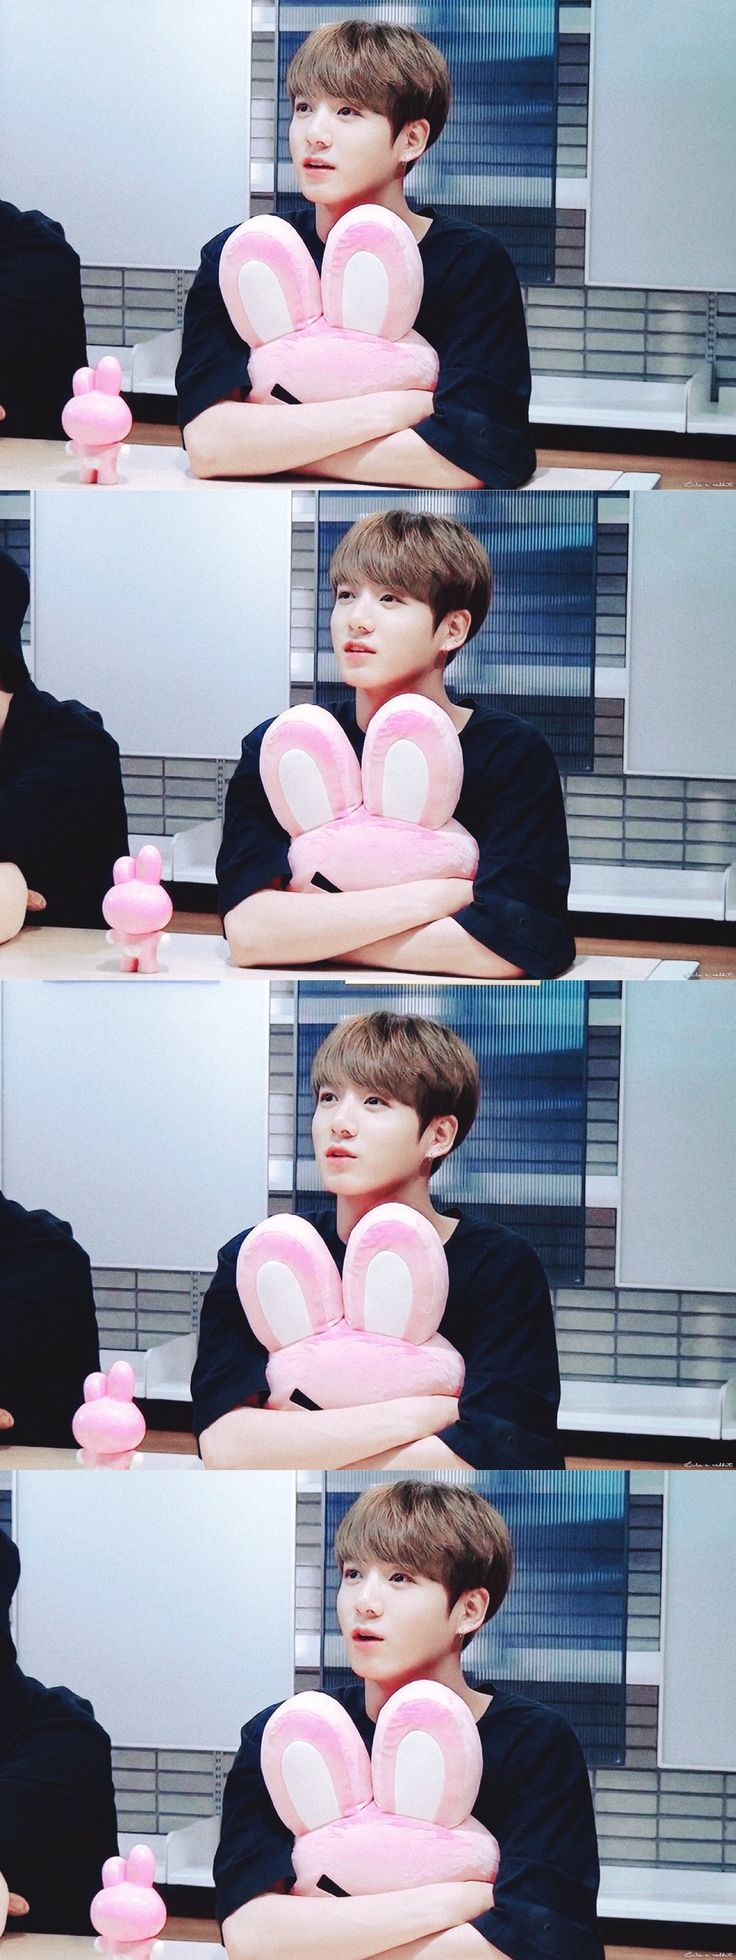 JUNGKOOK ♡ I want a cooky plushy and a Jungkookie X3